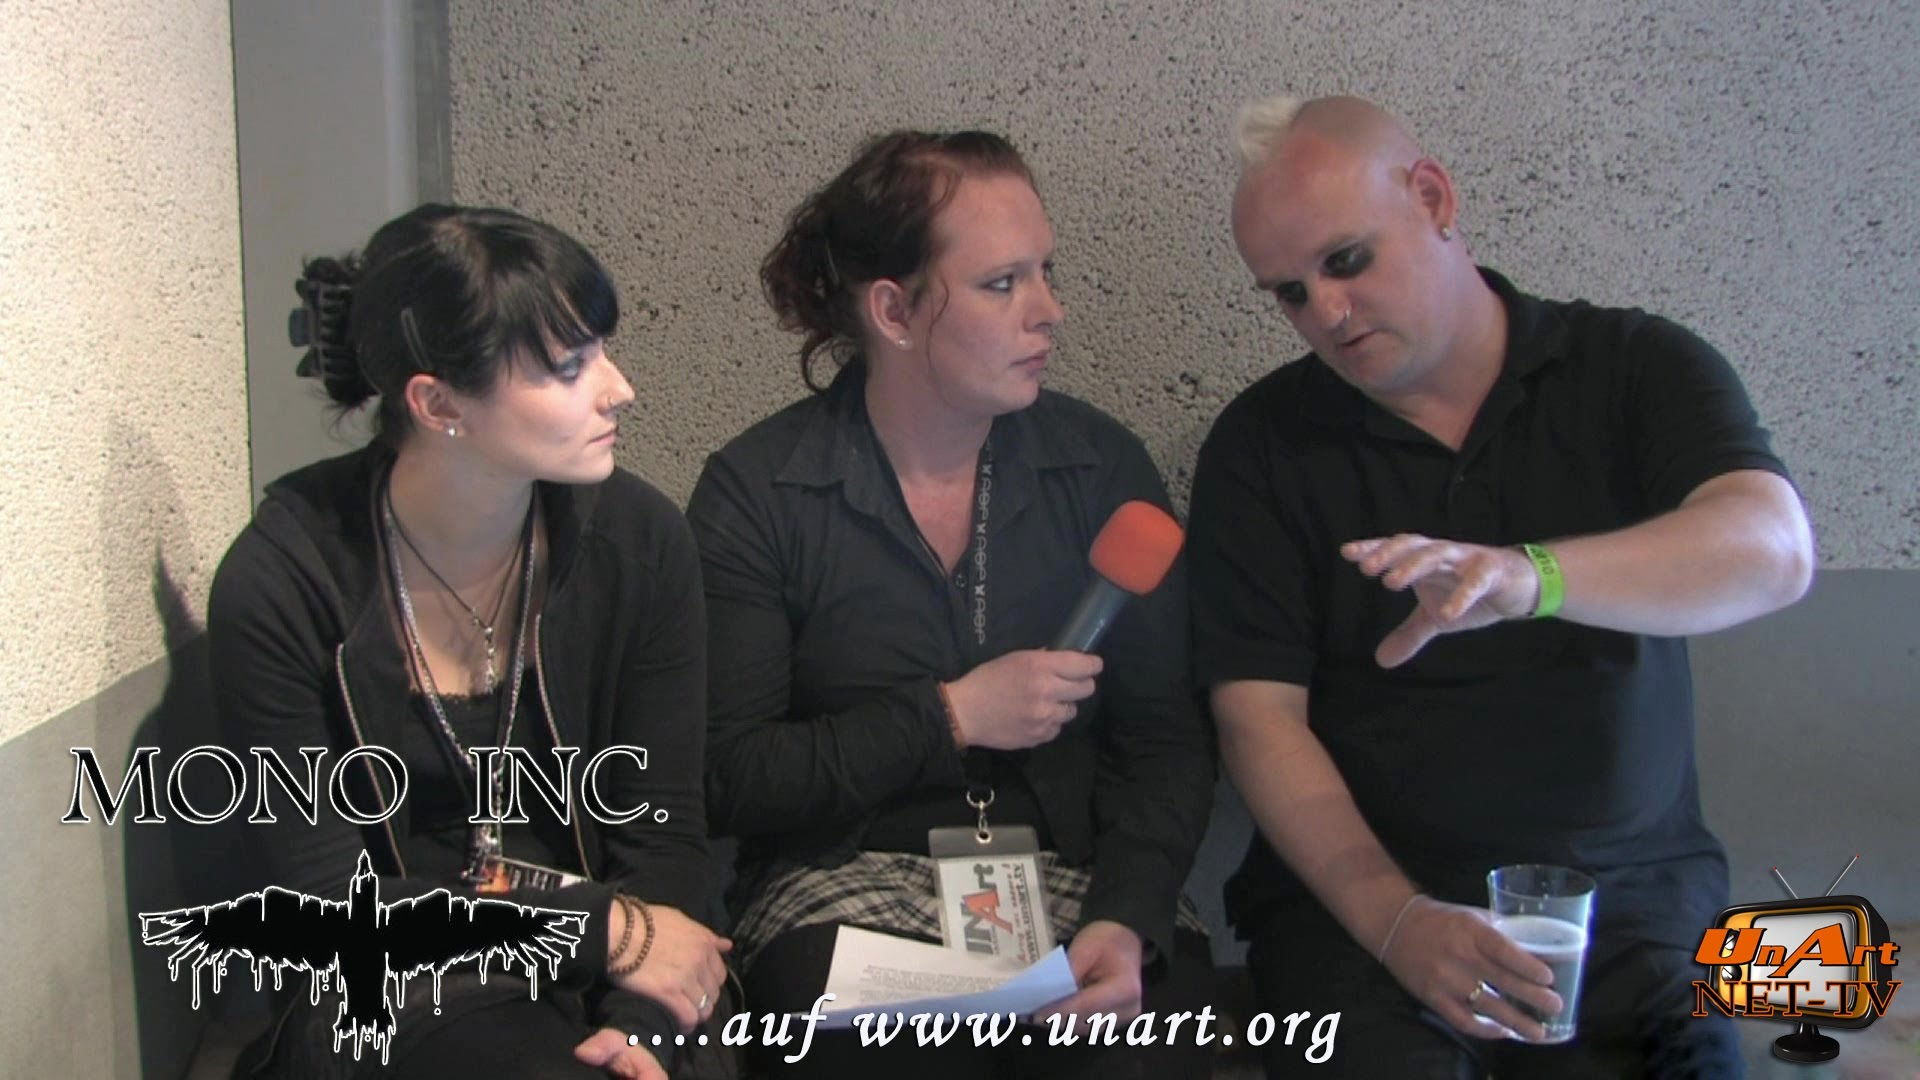 UnArt Live TV - Interview Mono Inc., Summersend Andernach 2010